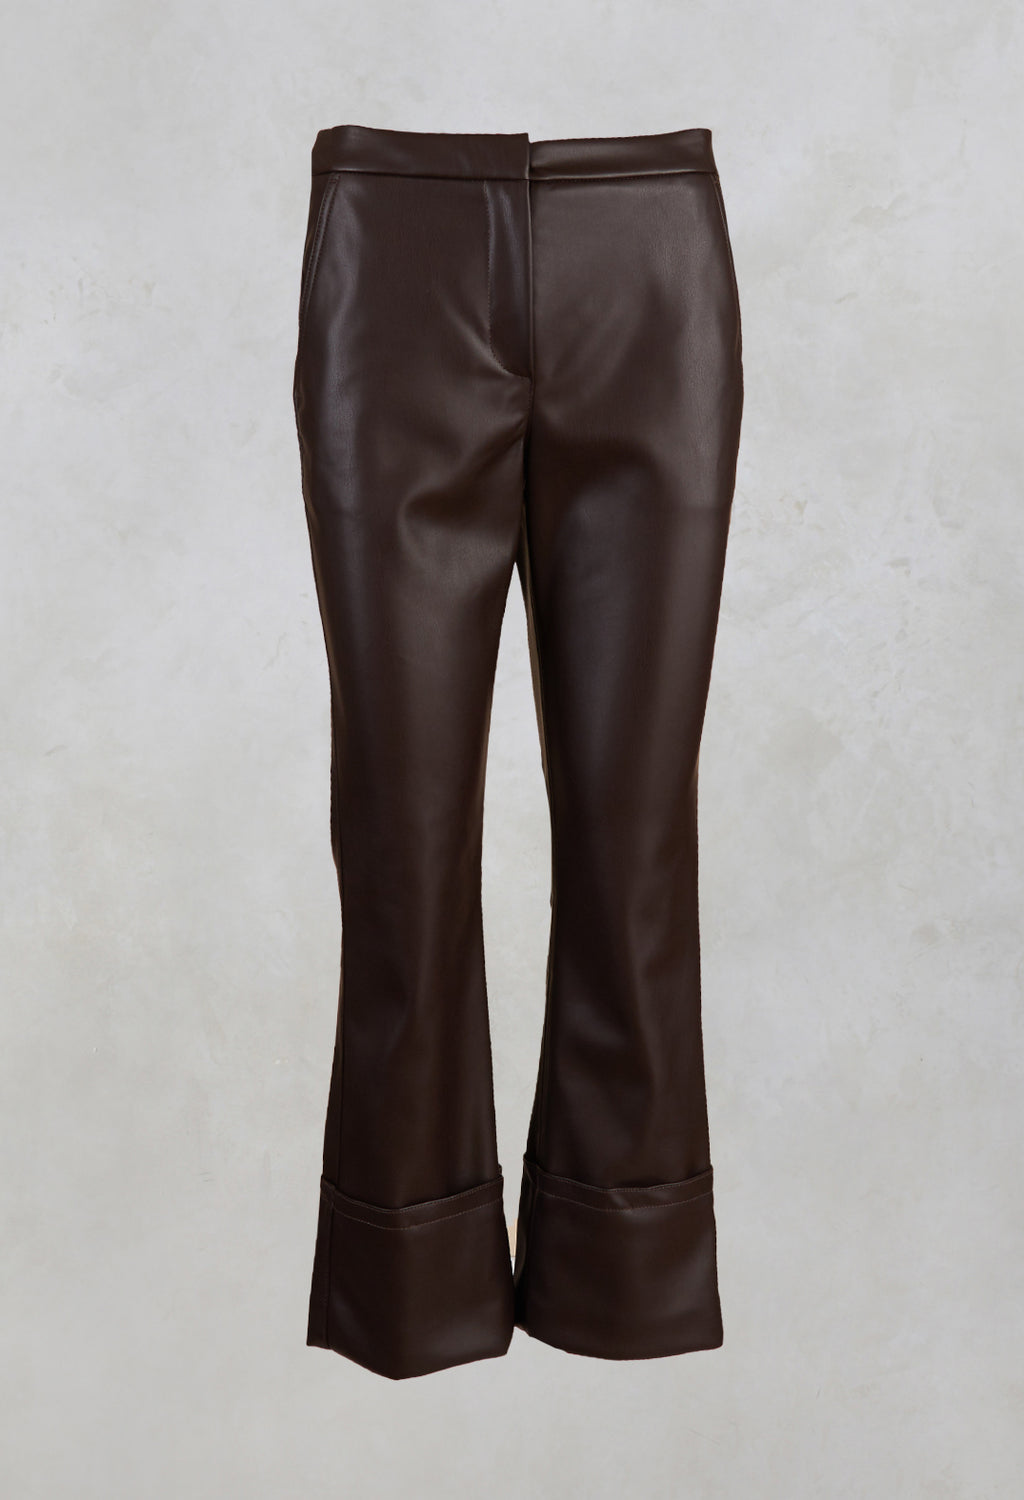 Leather Trousers in Espresso Brown